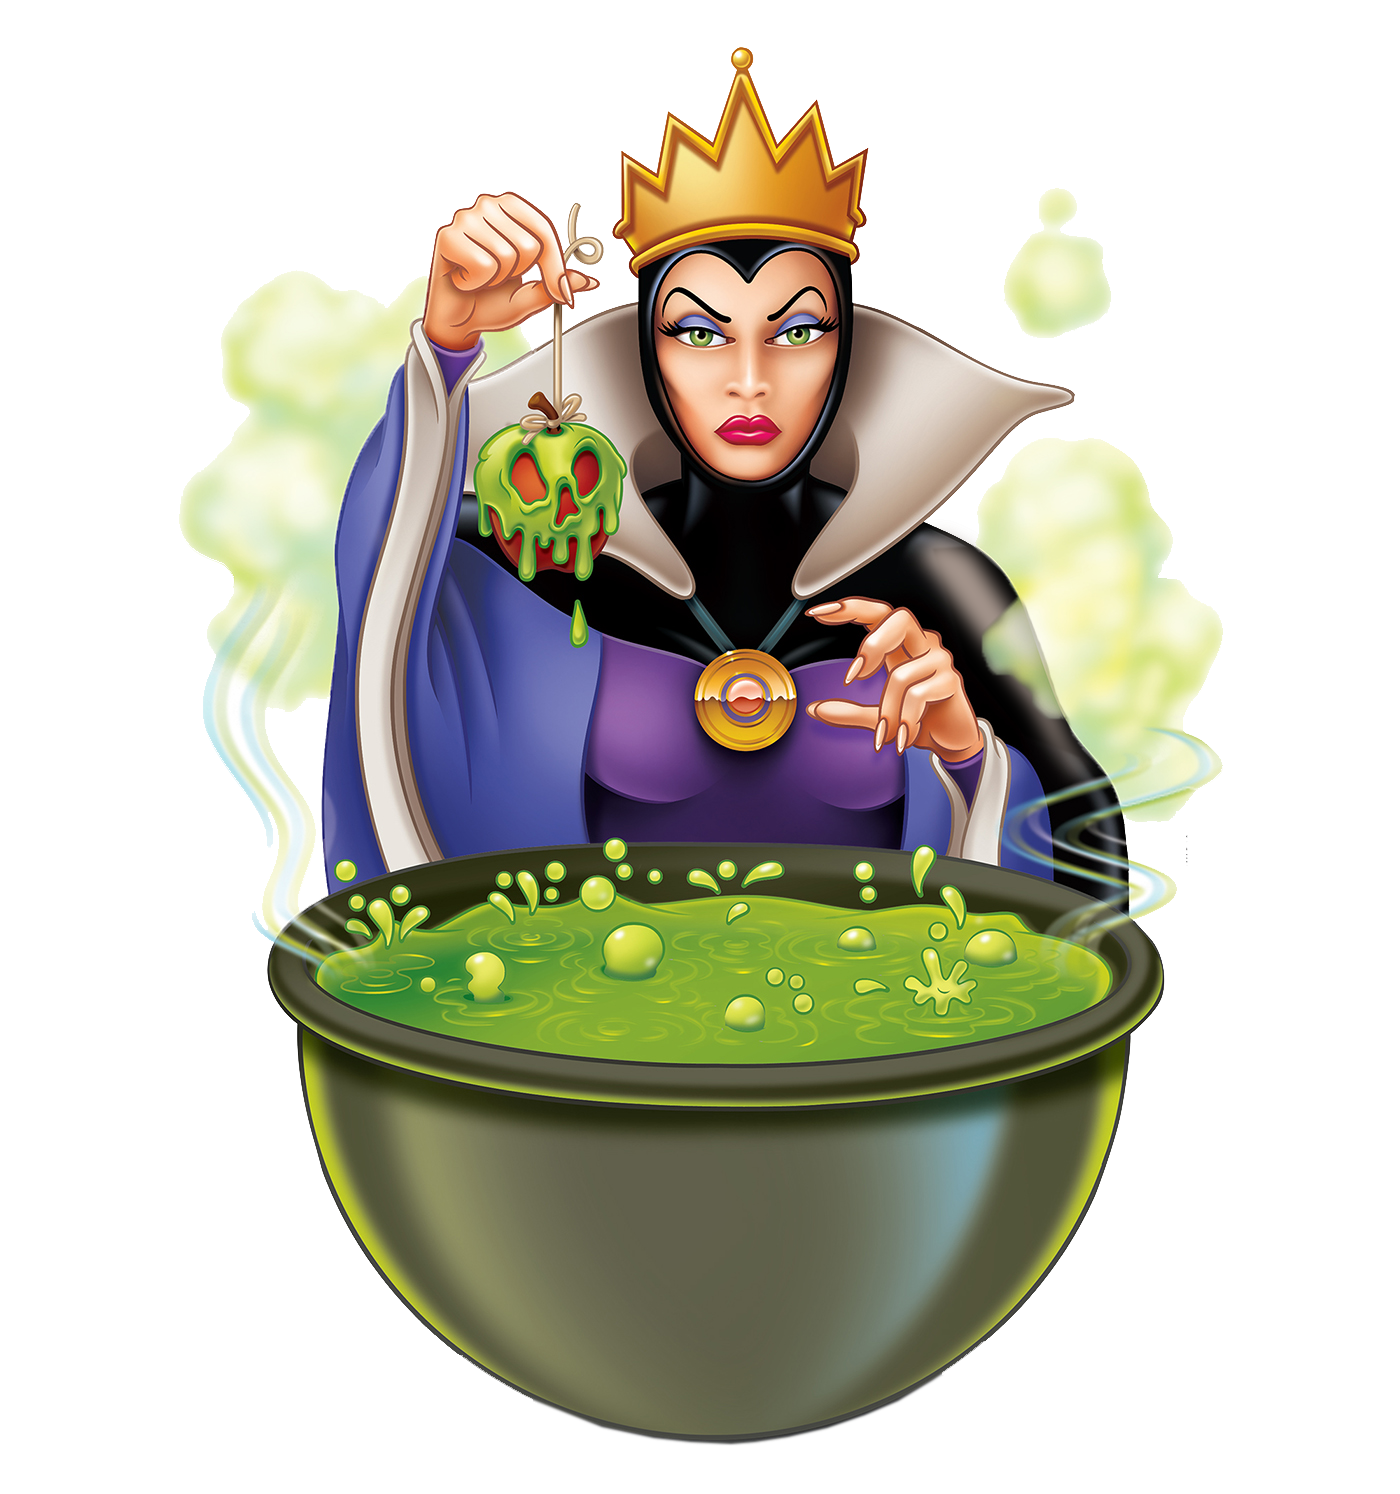 Evil queen clipart crown png black and white stock A Very Merry Un-Blog: Evil Queen Clipart png black and white stock